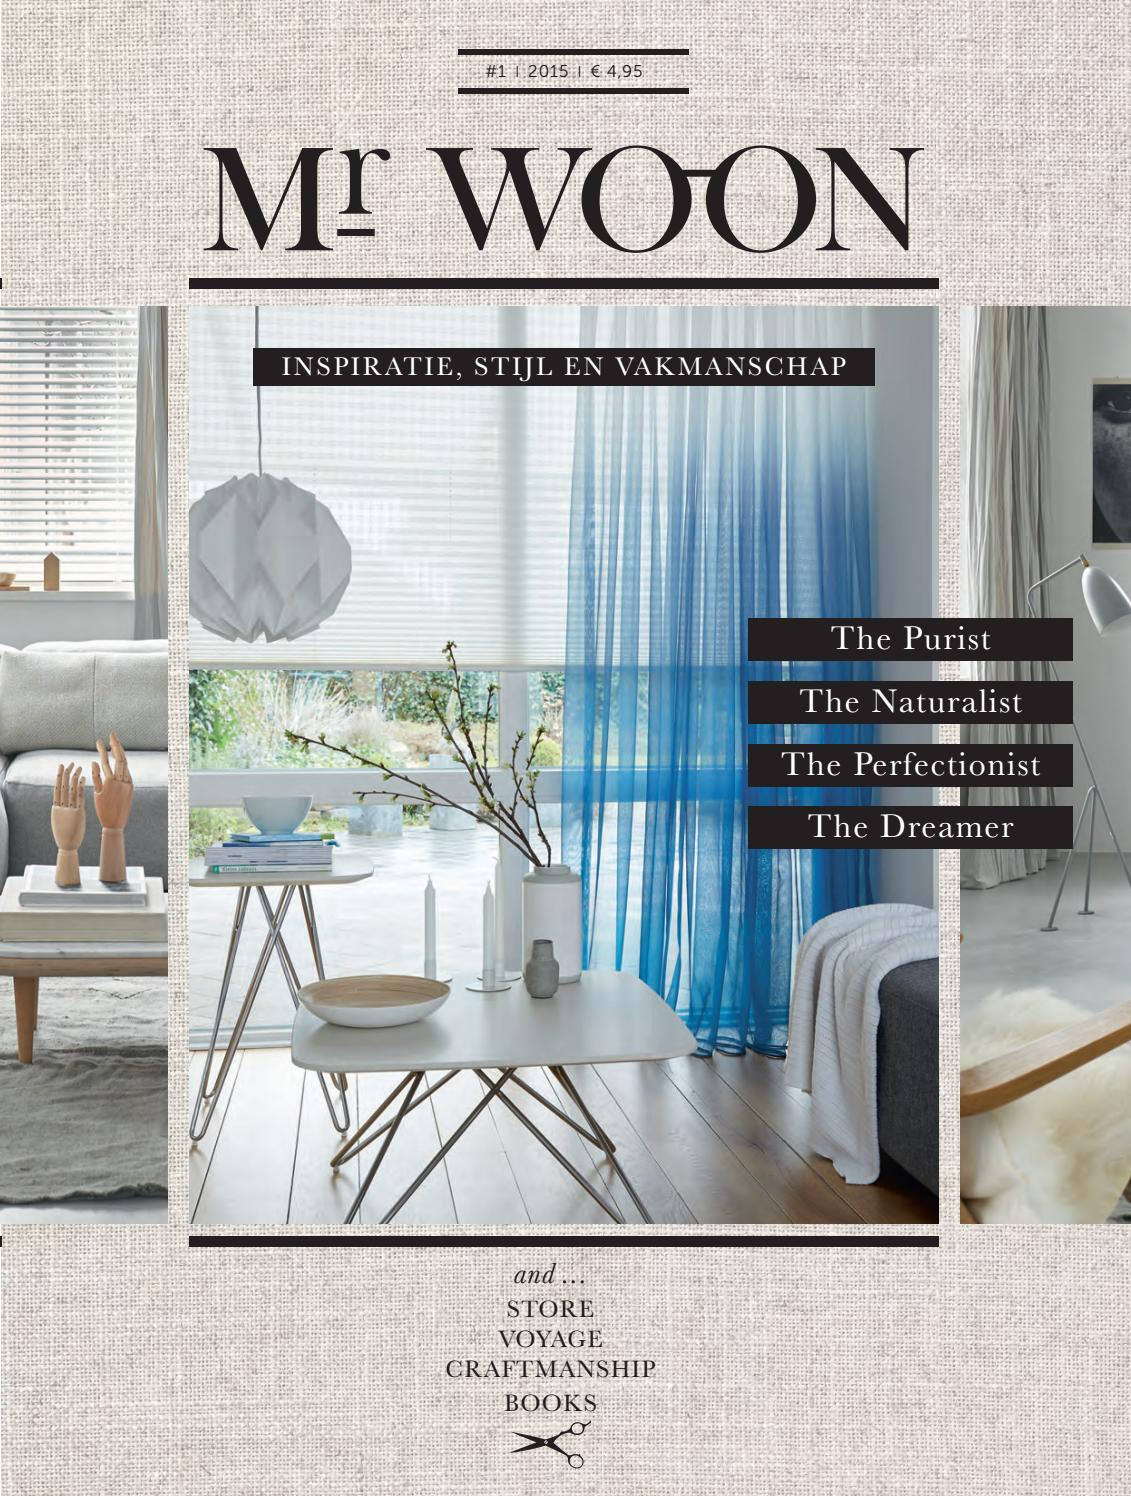 Woonkamer Reza Mrwoon 1 2015 By Toppoint Mrwoon Issuu